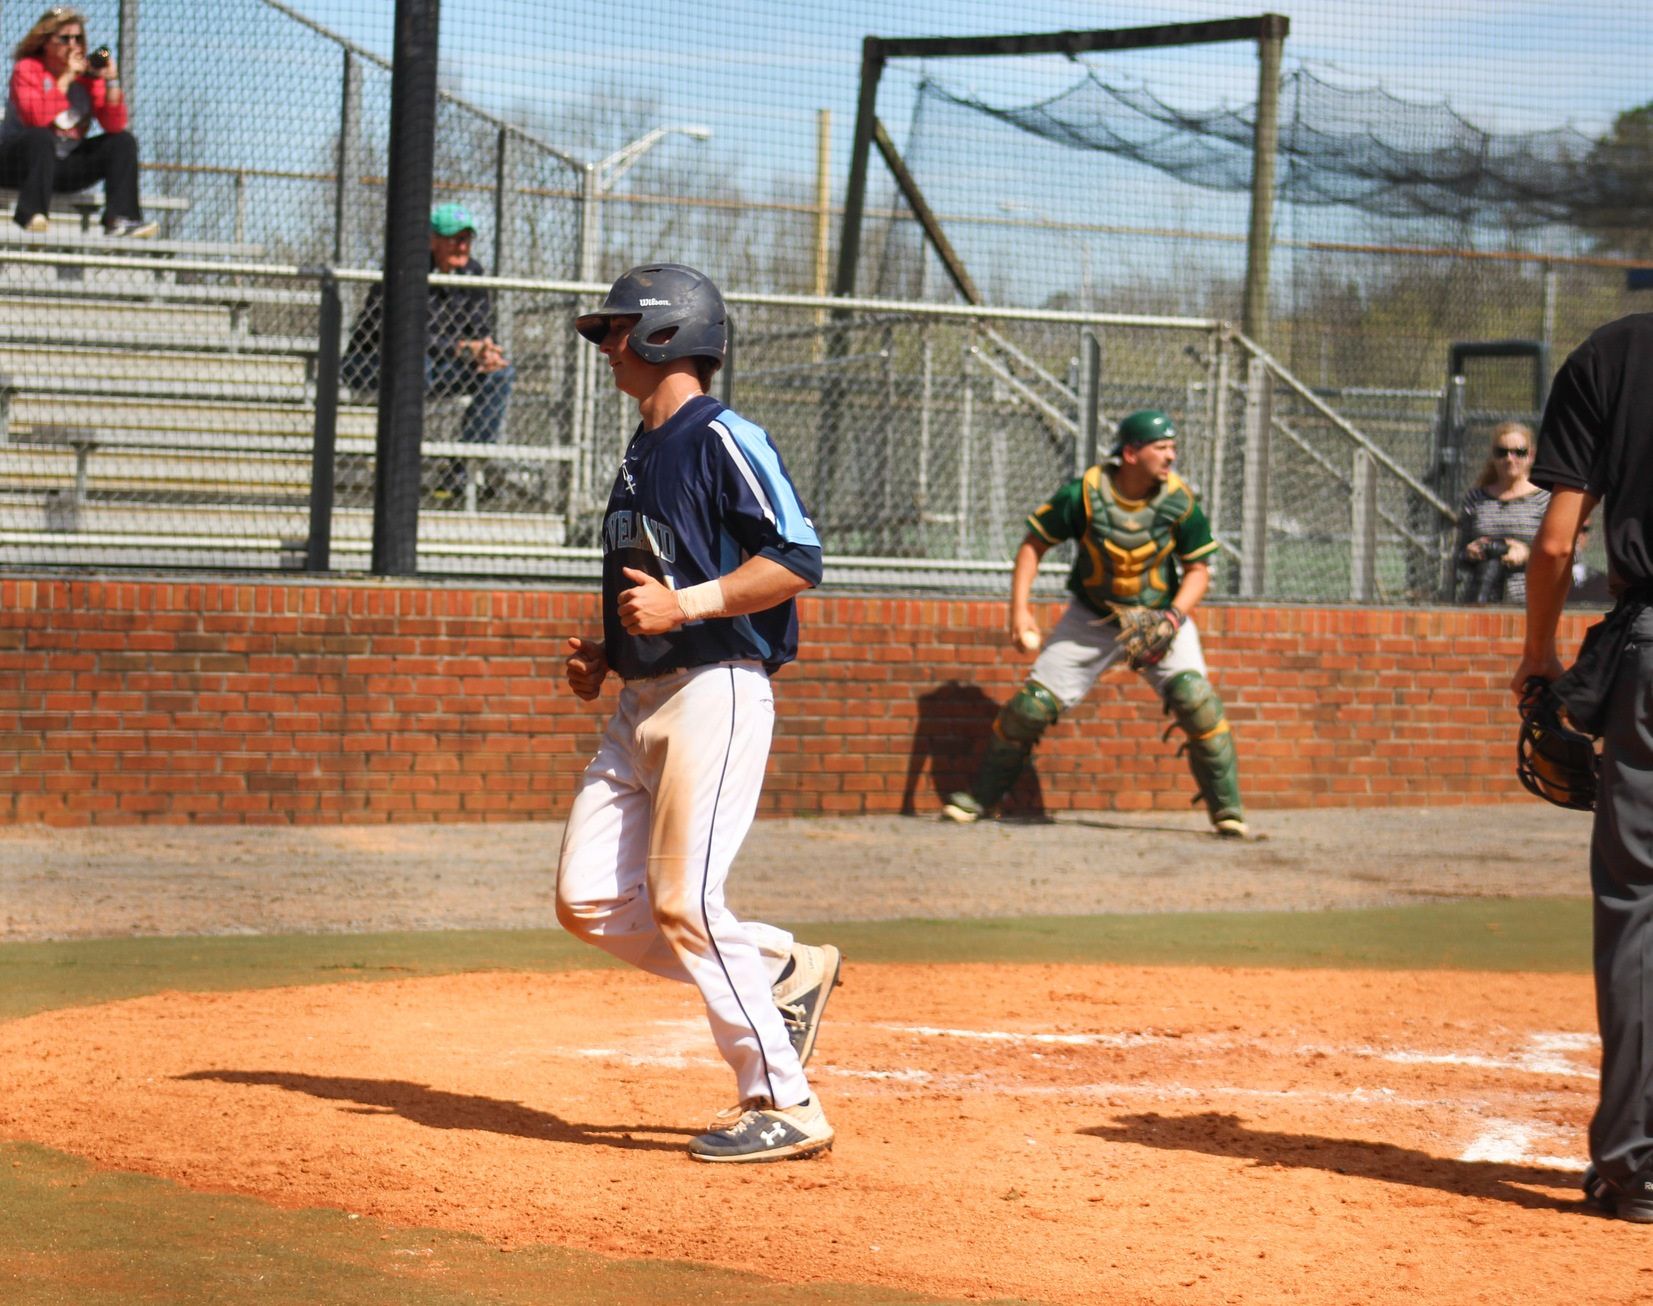 PREVIEW: Baseball Hosts Conference Foe Chatt State